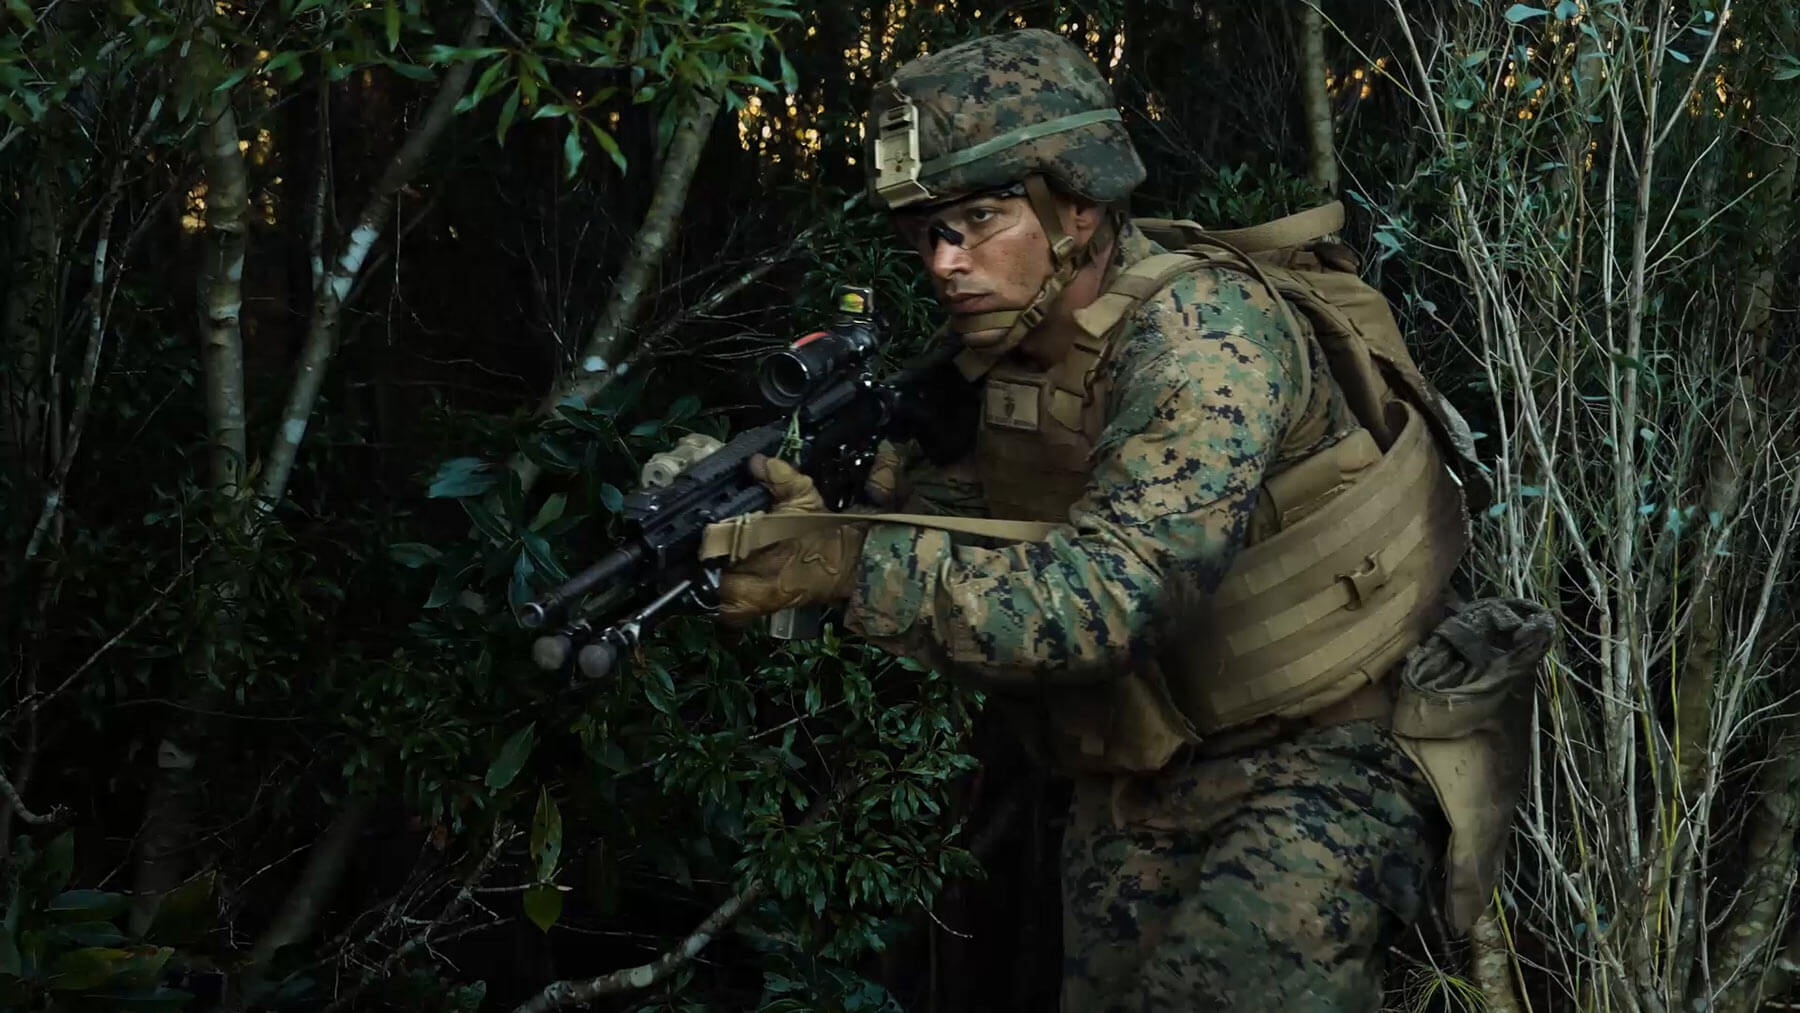 A Marine moves through windy branches, his rifle drawn.